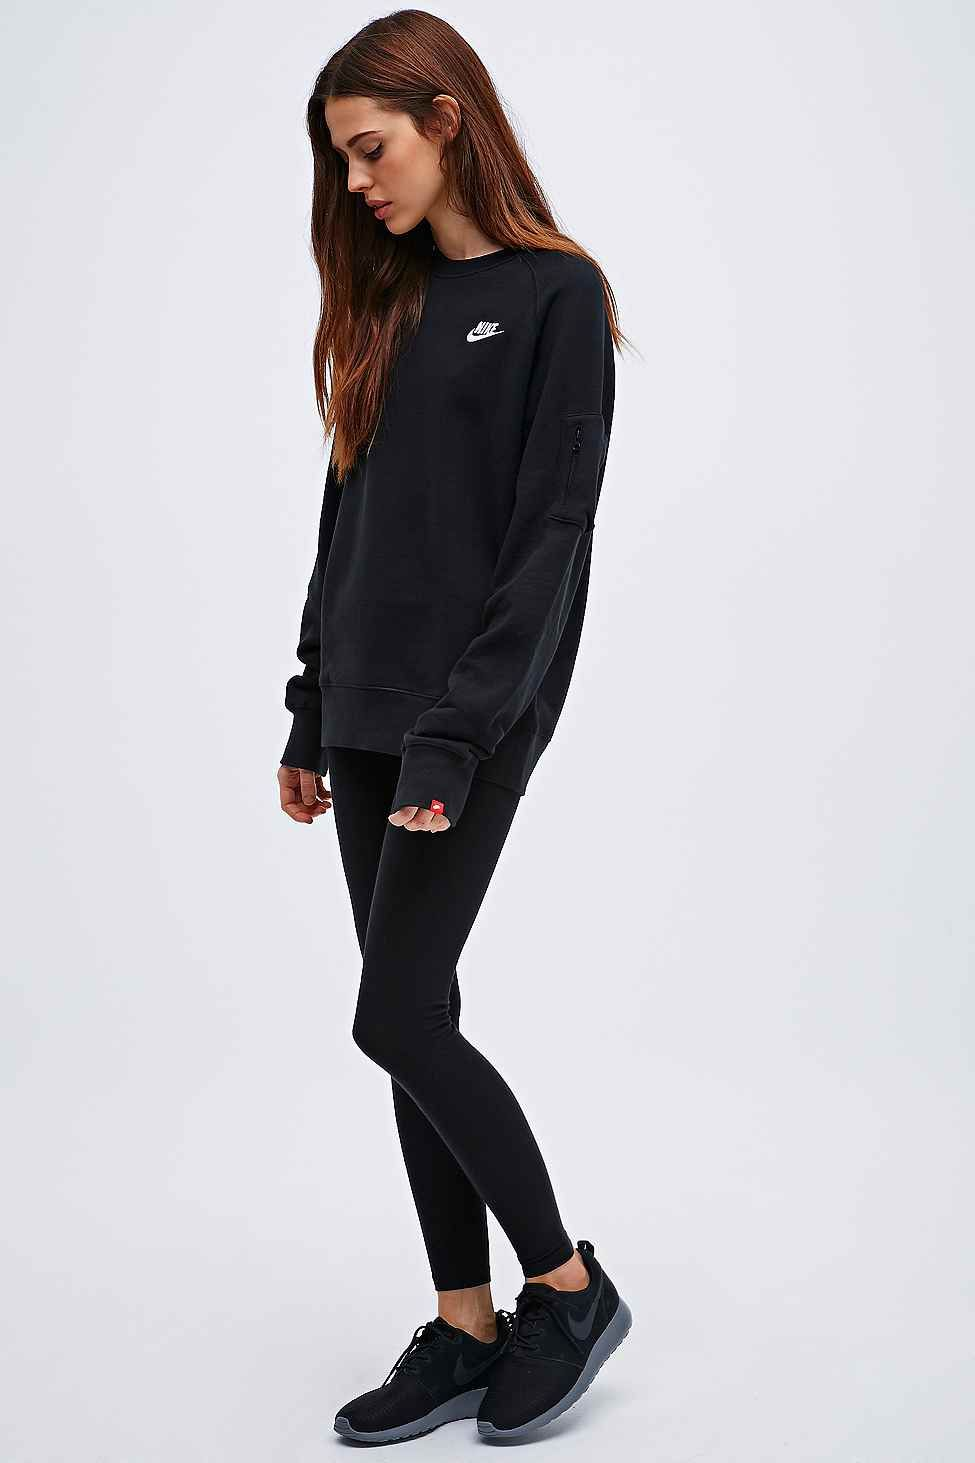 Nike Crew Neck Sweatshirt in Black   Fashion.   Pinterest   Nike ... 8035c82c23